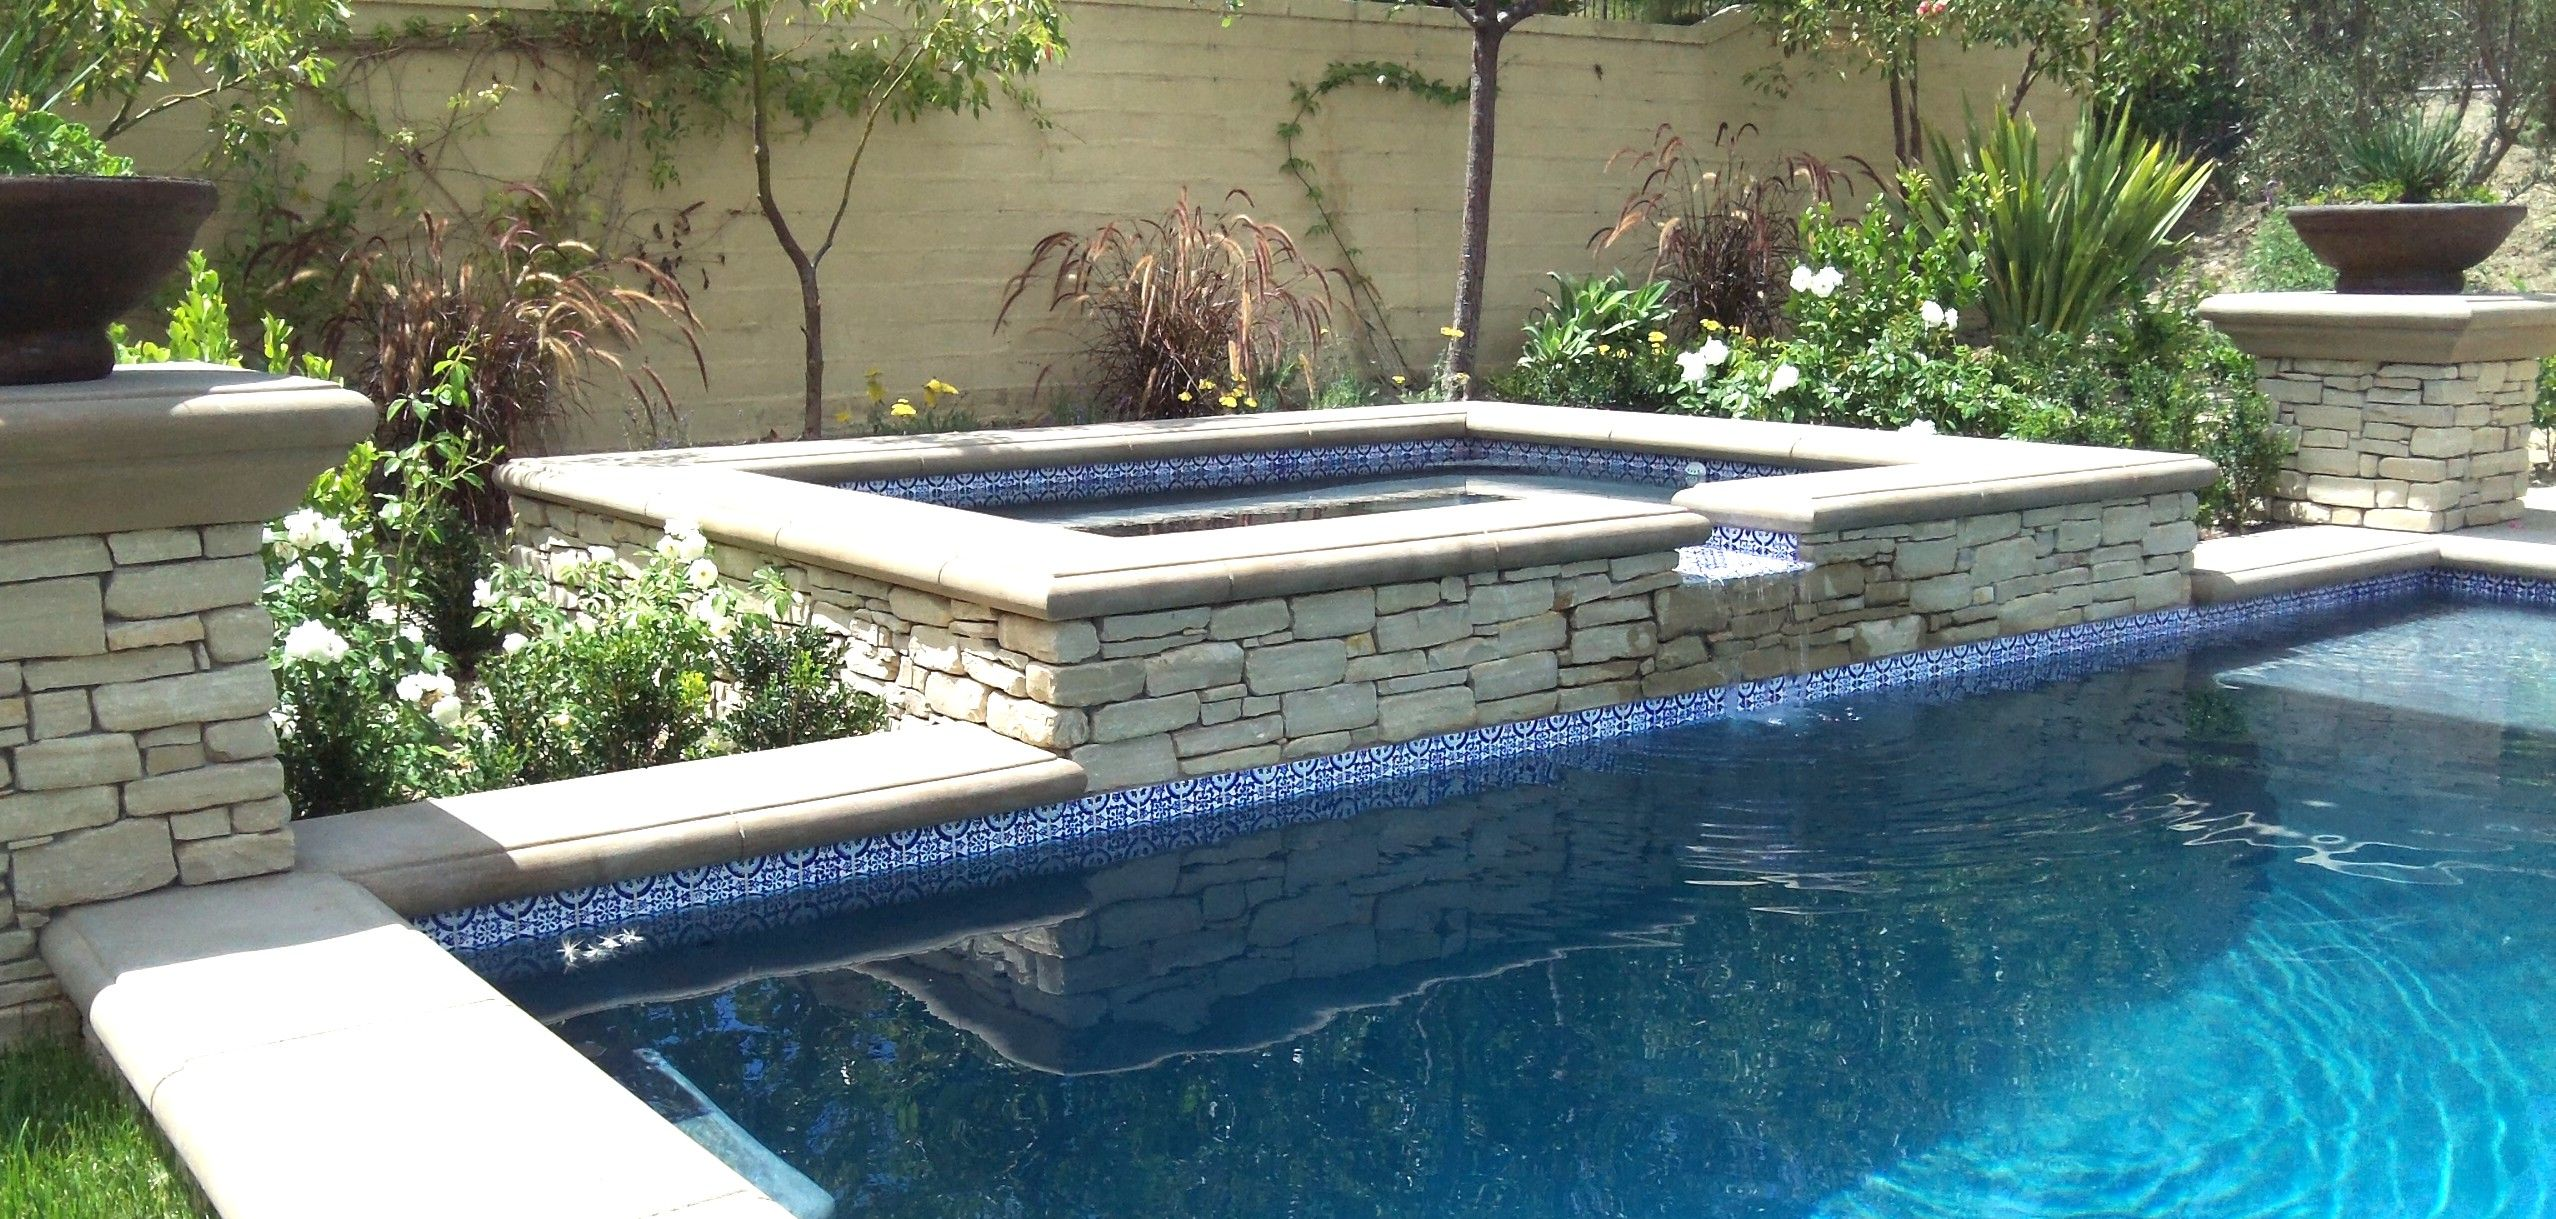 Pool tile designs pool water fountain design ideas small for Poolside ideas